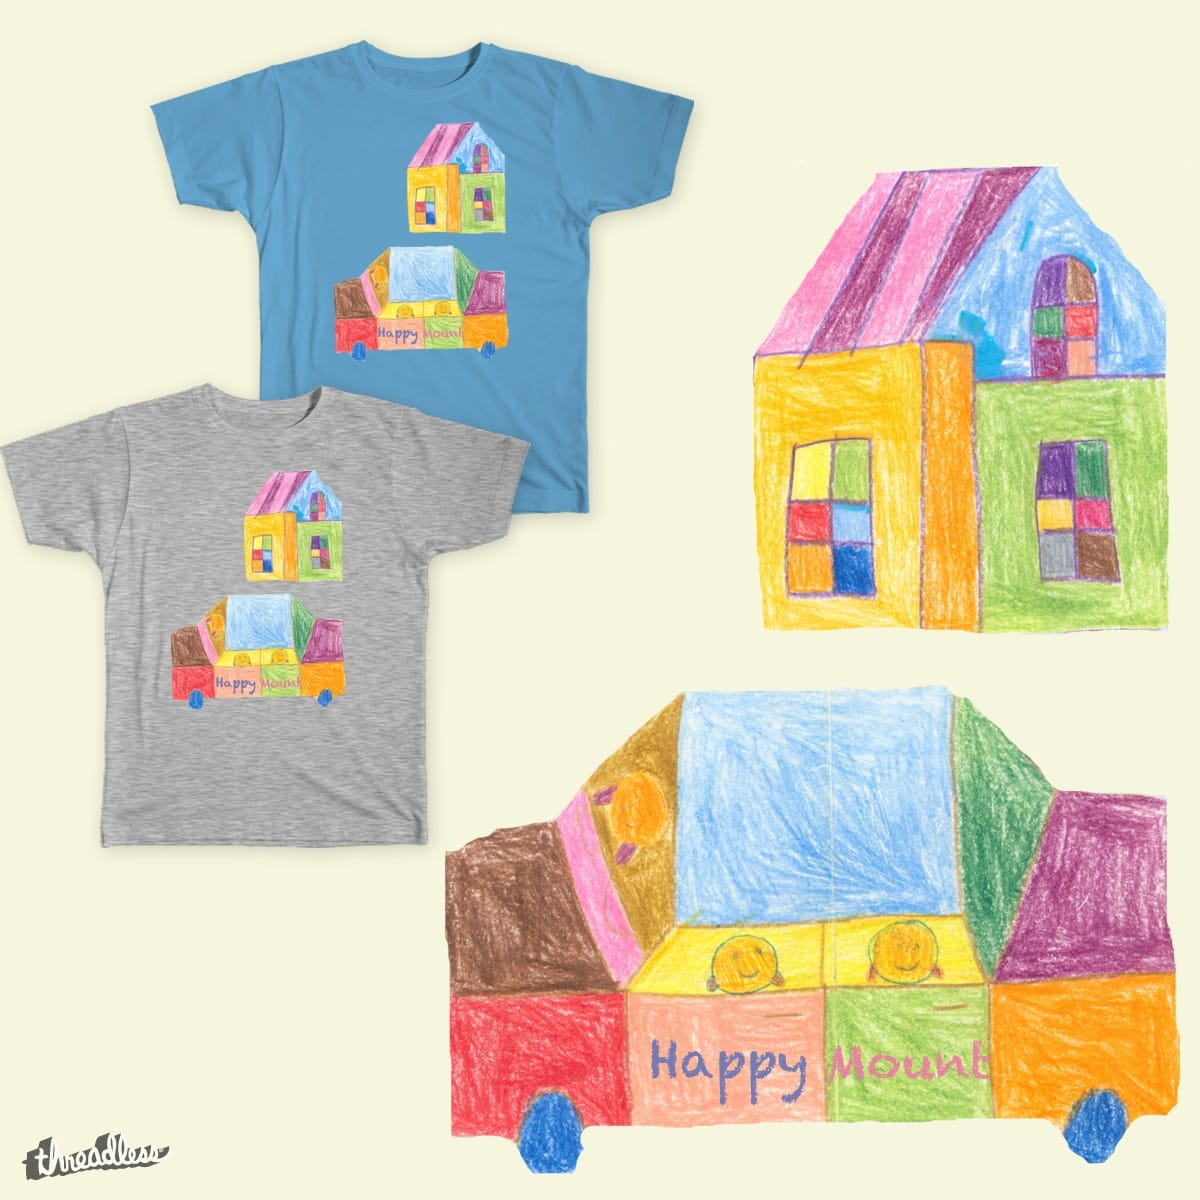 Forever a kid by benshieh0613 on Threadless